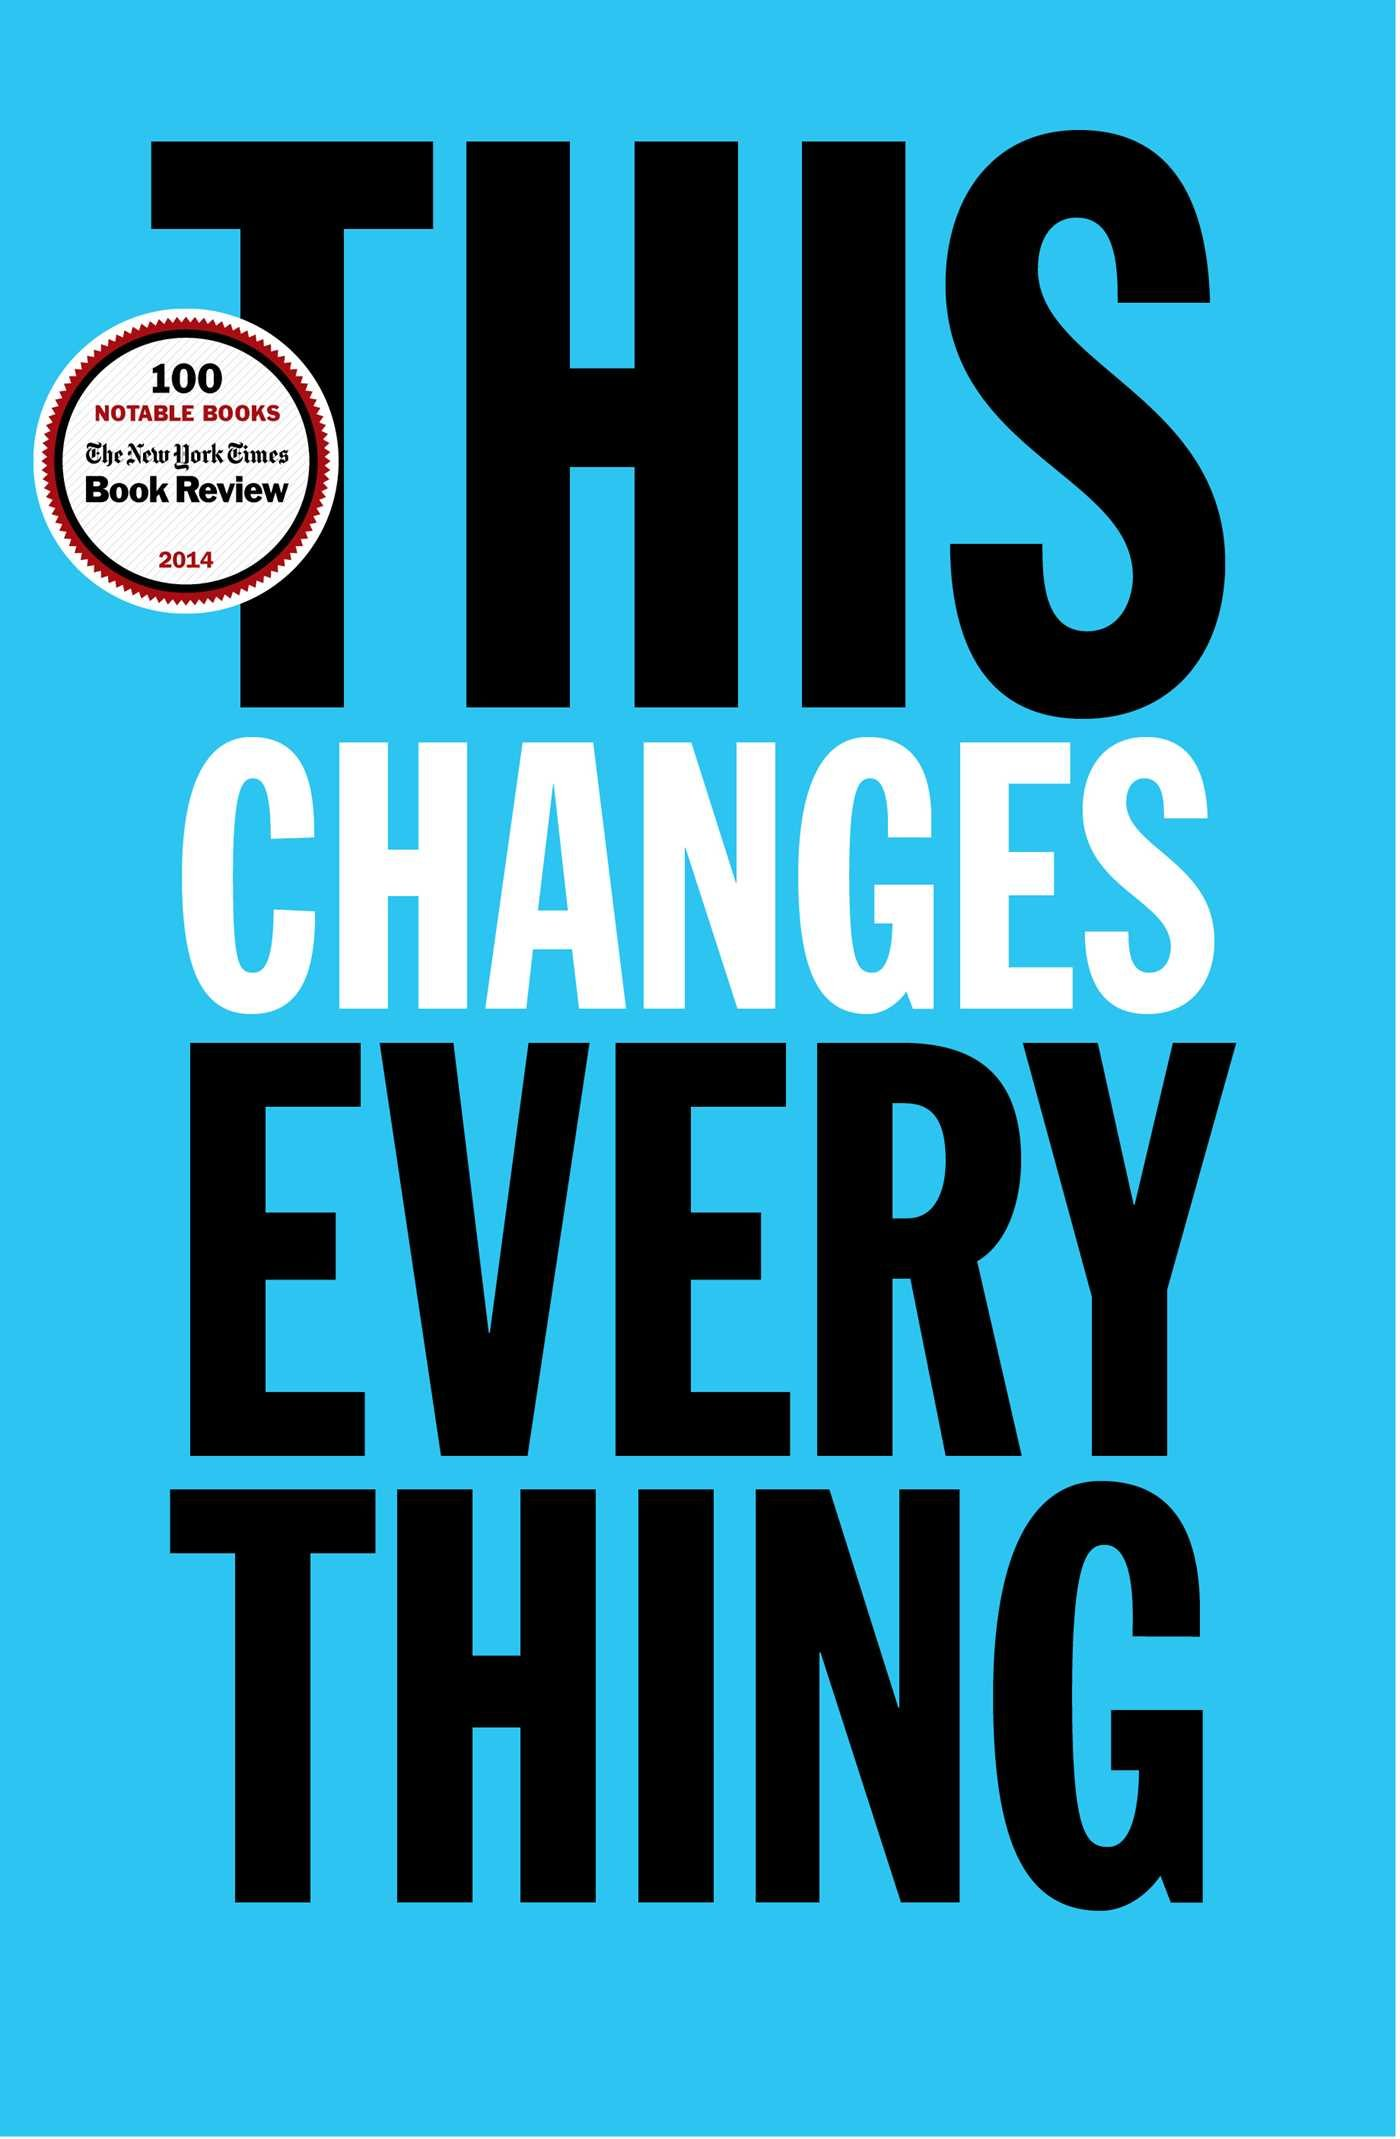 This Changes Everything ISBN-13 9781451697384